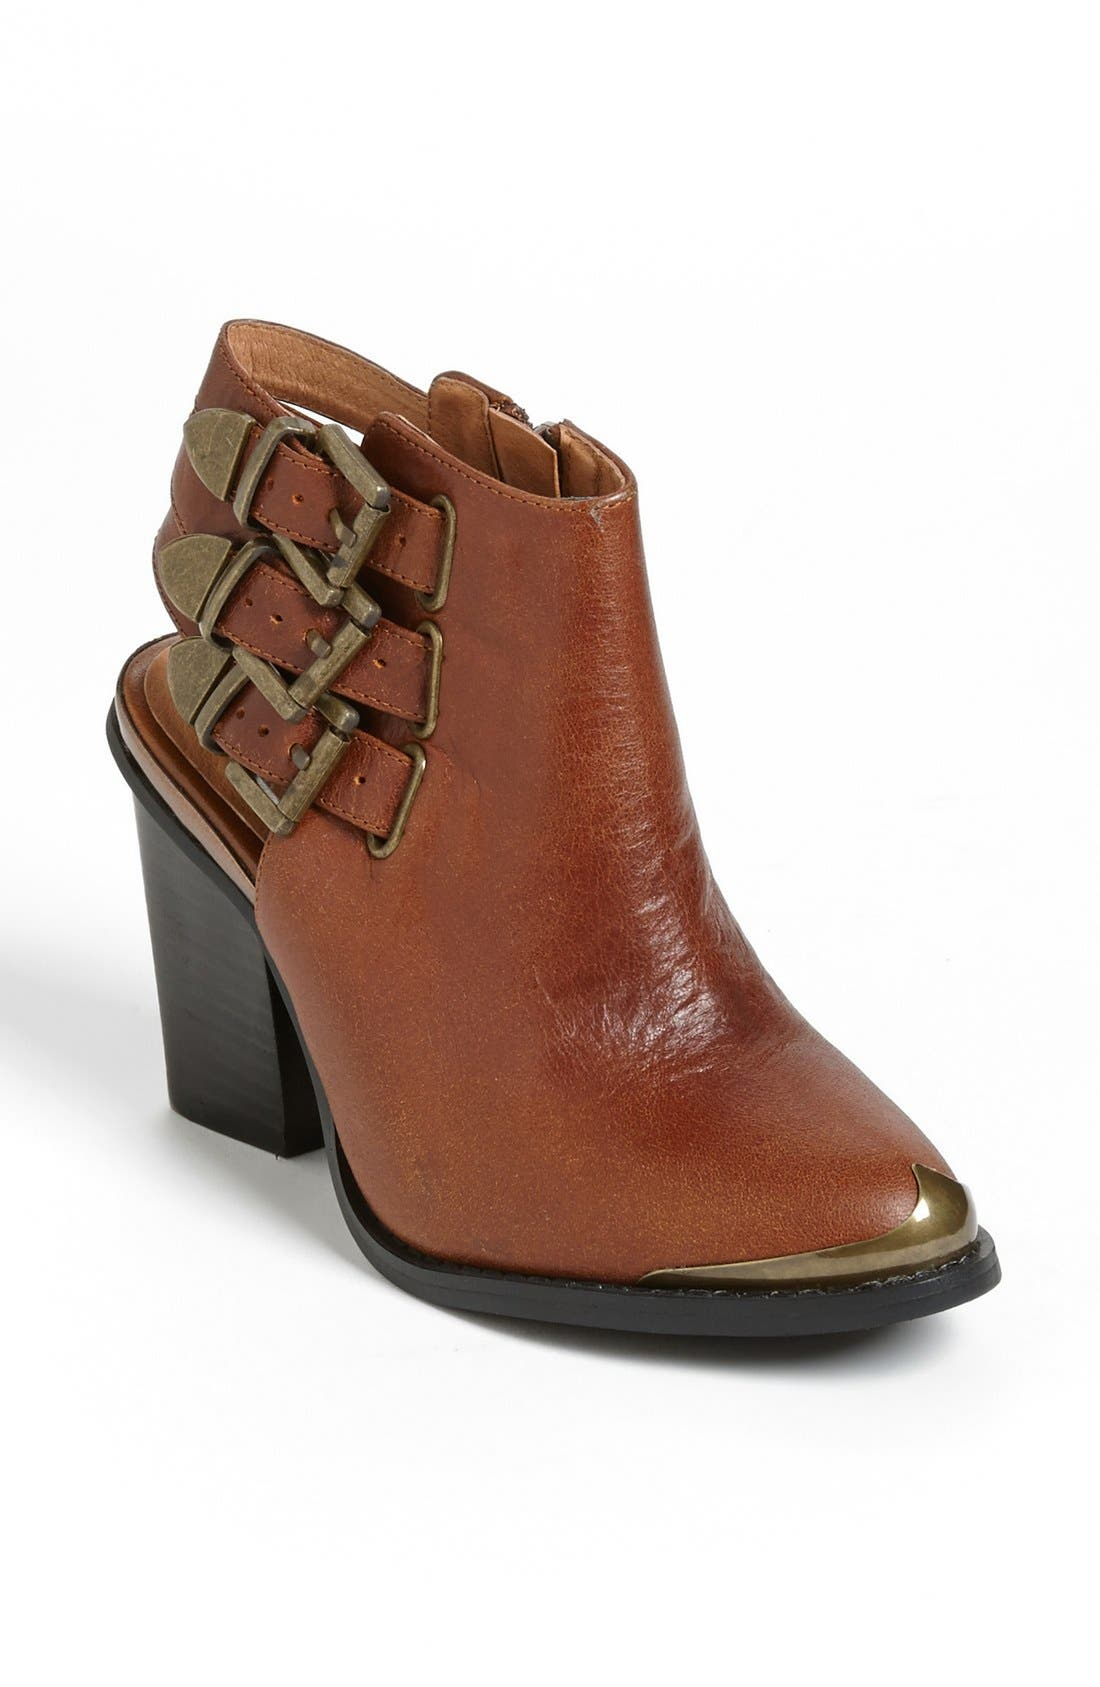 Alternate Image 1 Selected - Jeffrey Campbell 'Carlton' Bootie